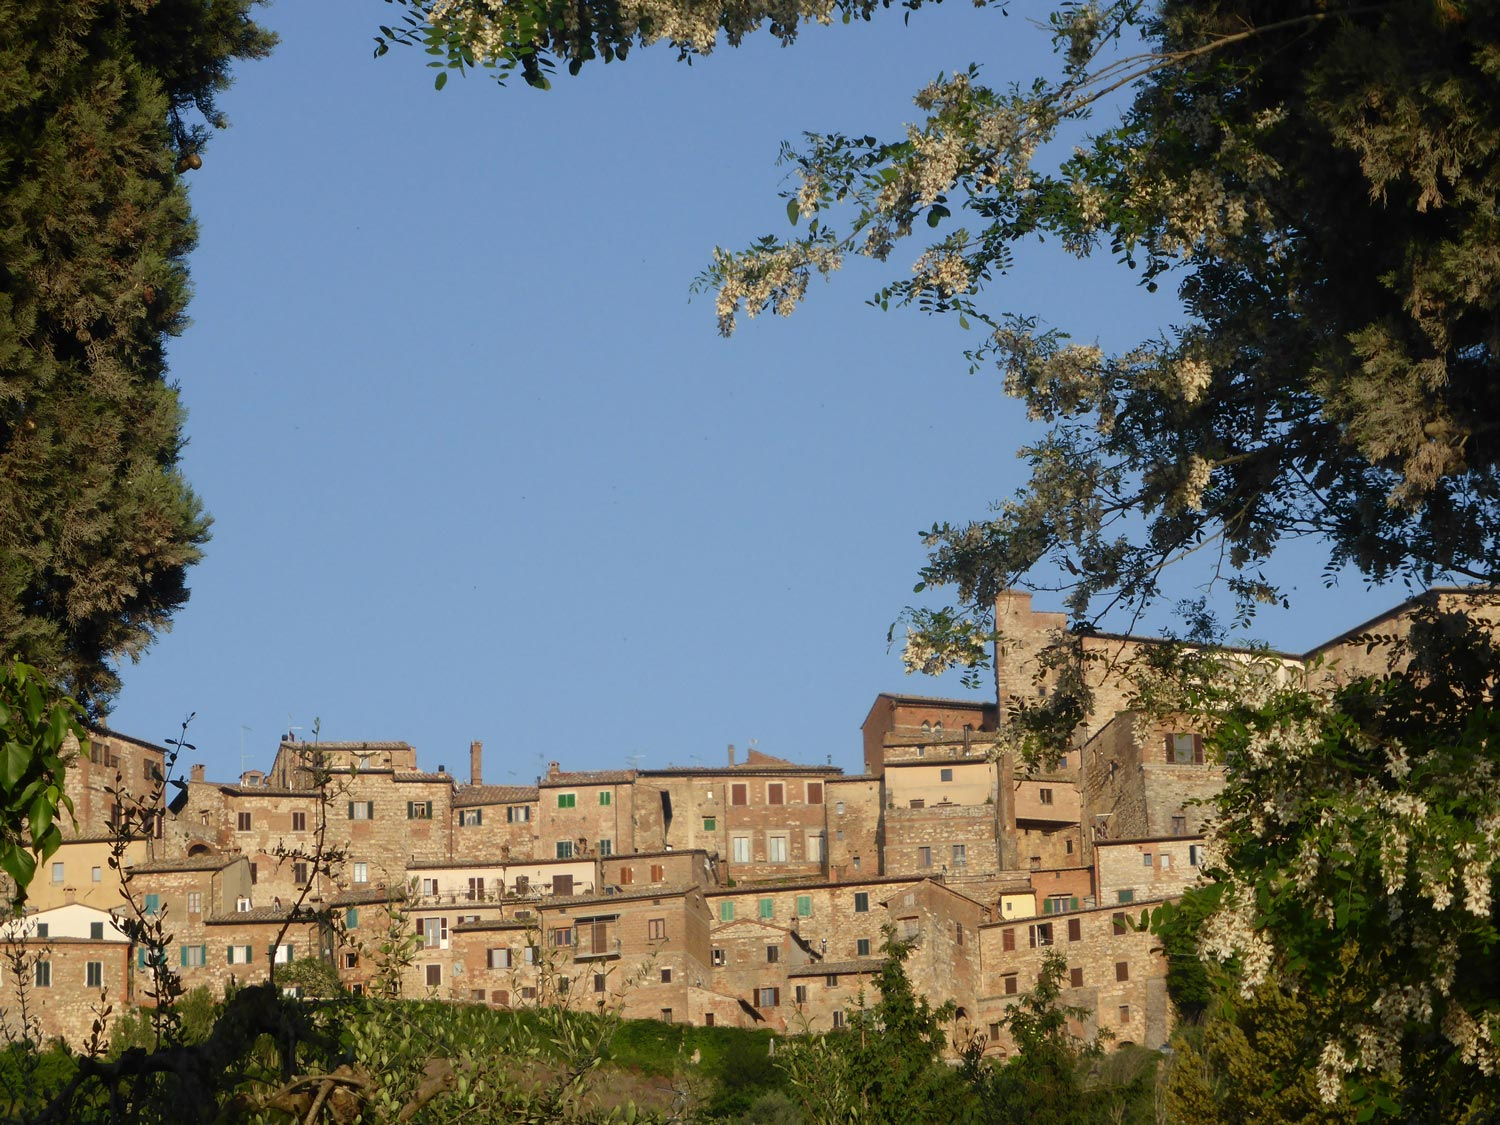 montepulciano-before-sunset